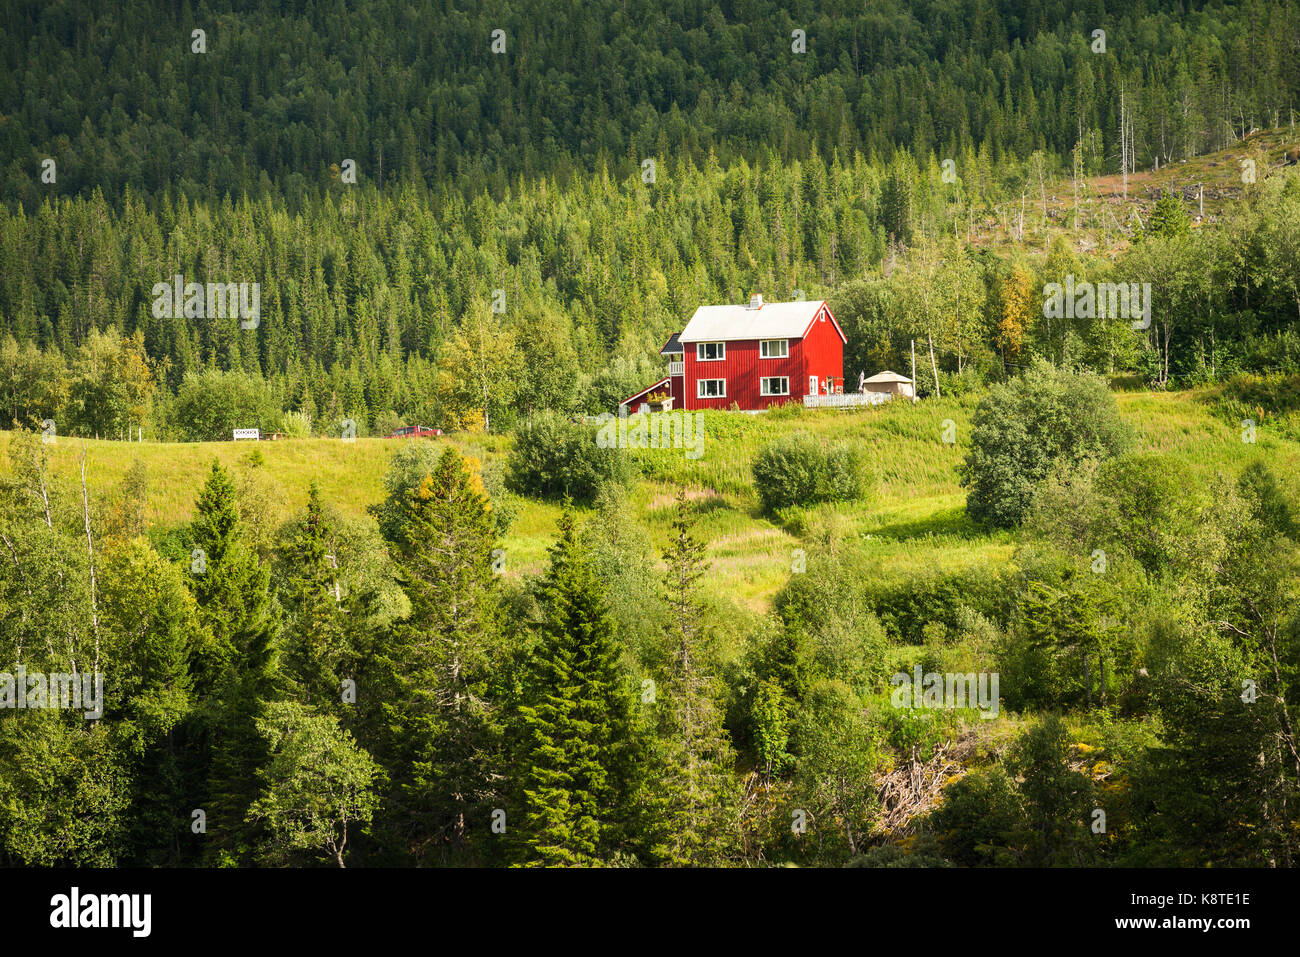 Rural Red House On The Top Of The Hill Over River Norway Stock Photo Alamy